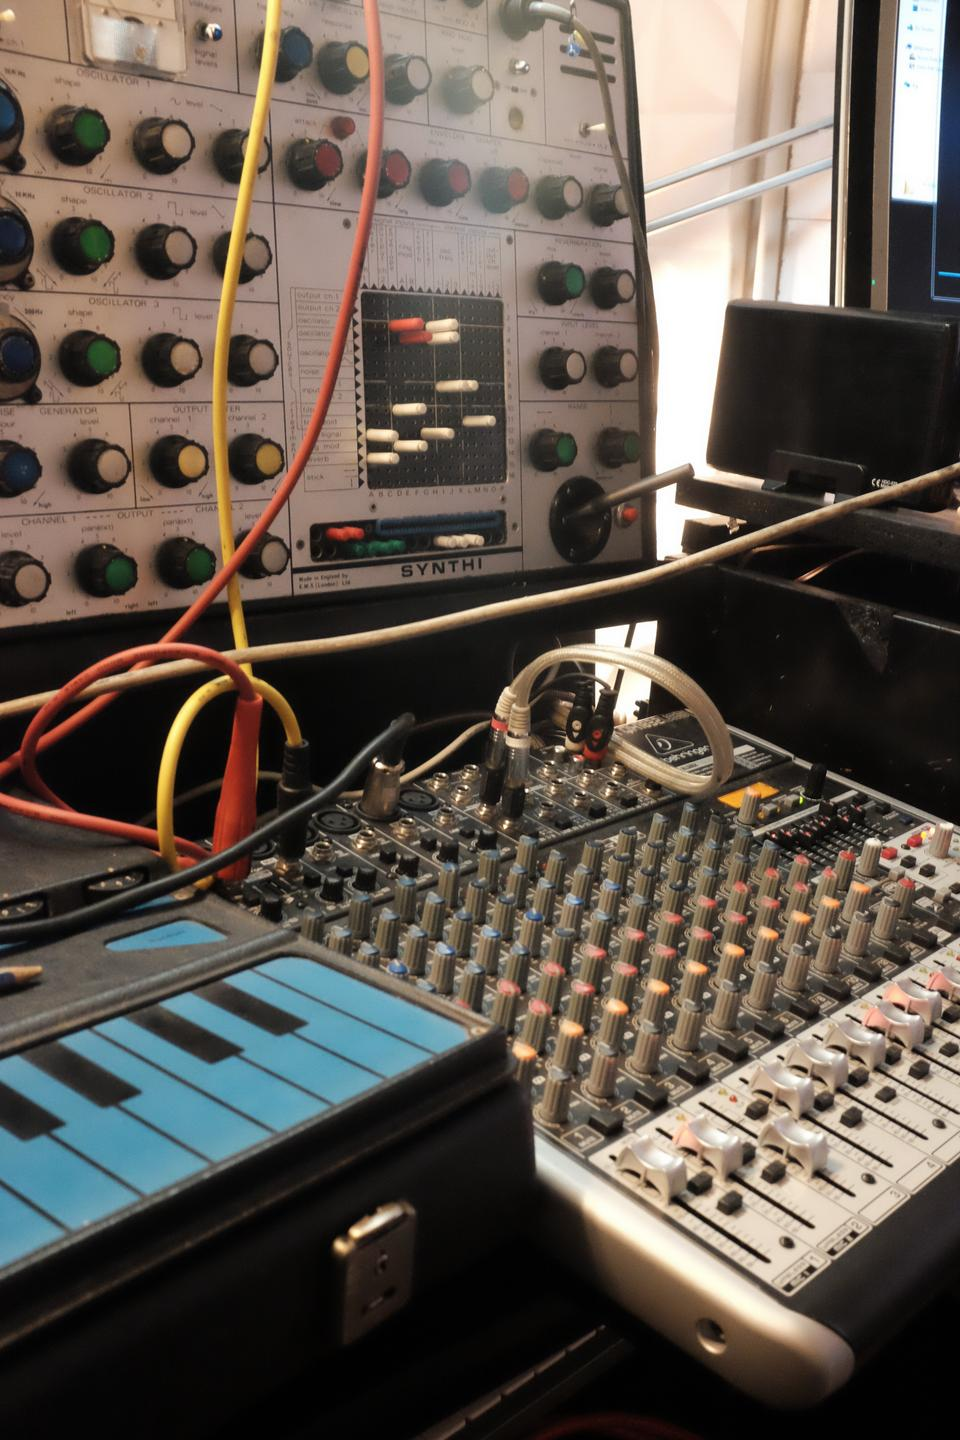 While he was living in Germany in the 1970s, Gokcen Kaynatan spent a year learning how to play the EMS Synthi, a 27-octave synthesizer. Much of his upcoming 2018 album